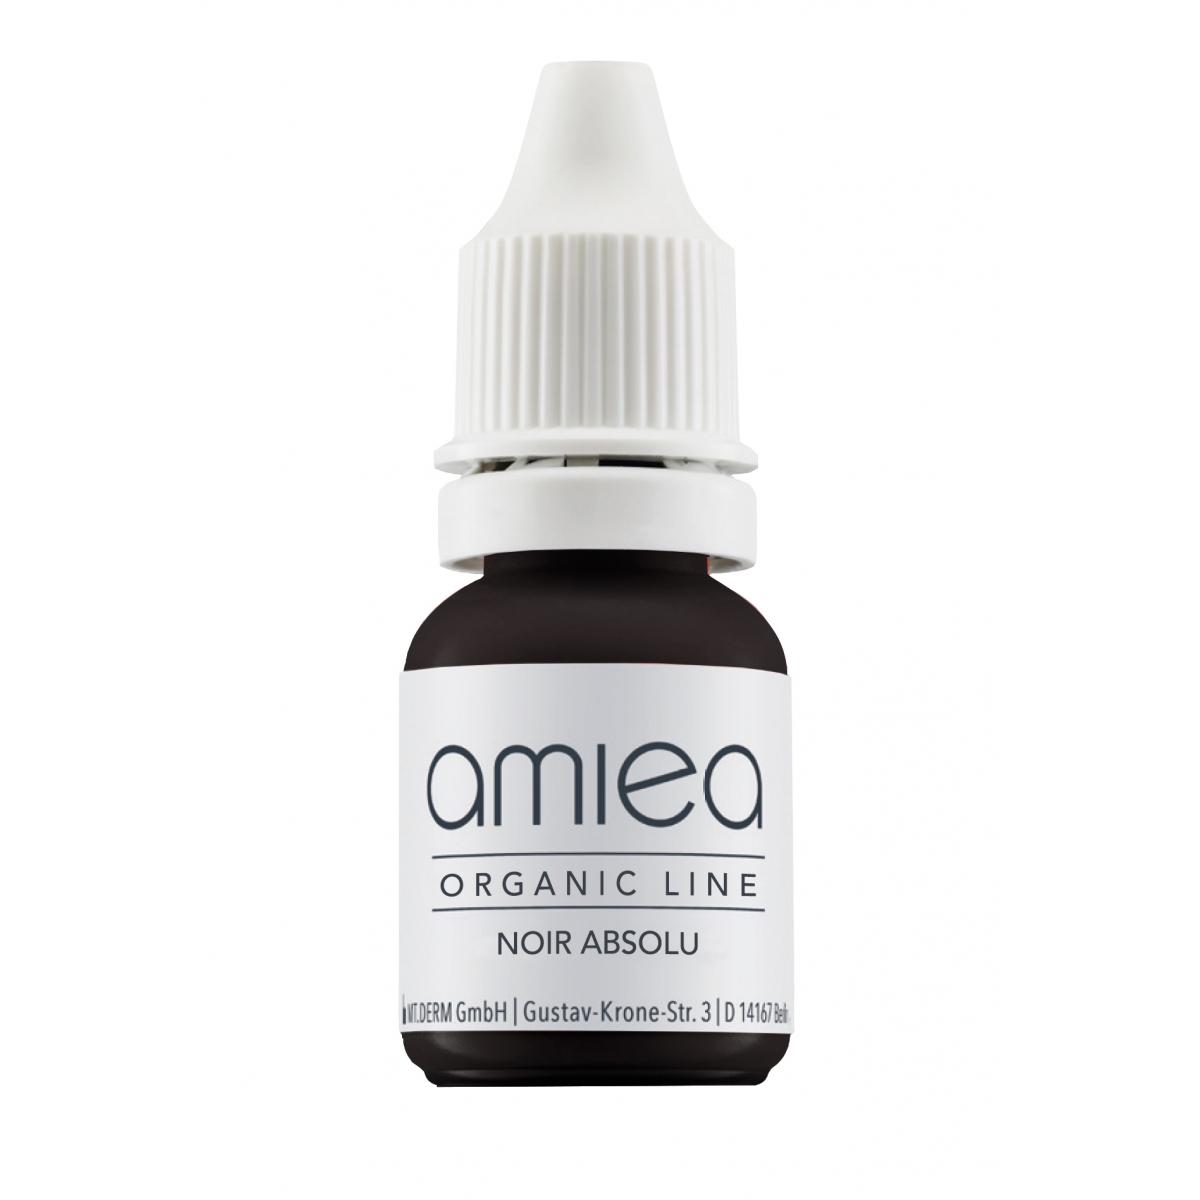 Organicline (10 ml) - PIGMENTS AMIEA ORGANICLINE NOIR ABSOLU, Flacon 10 ml